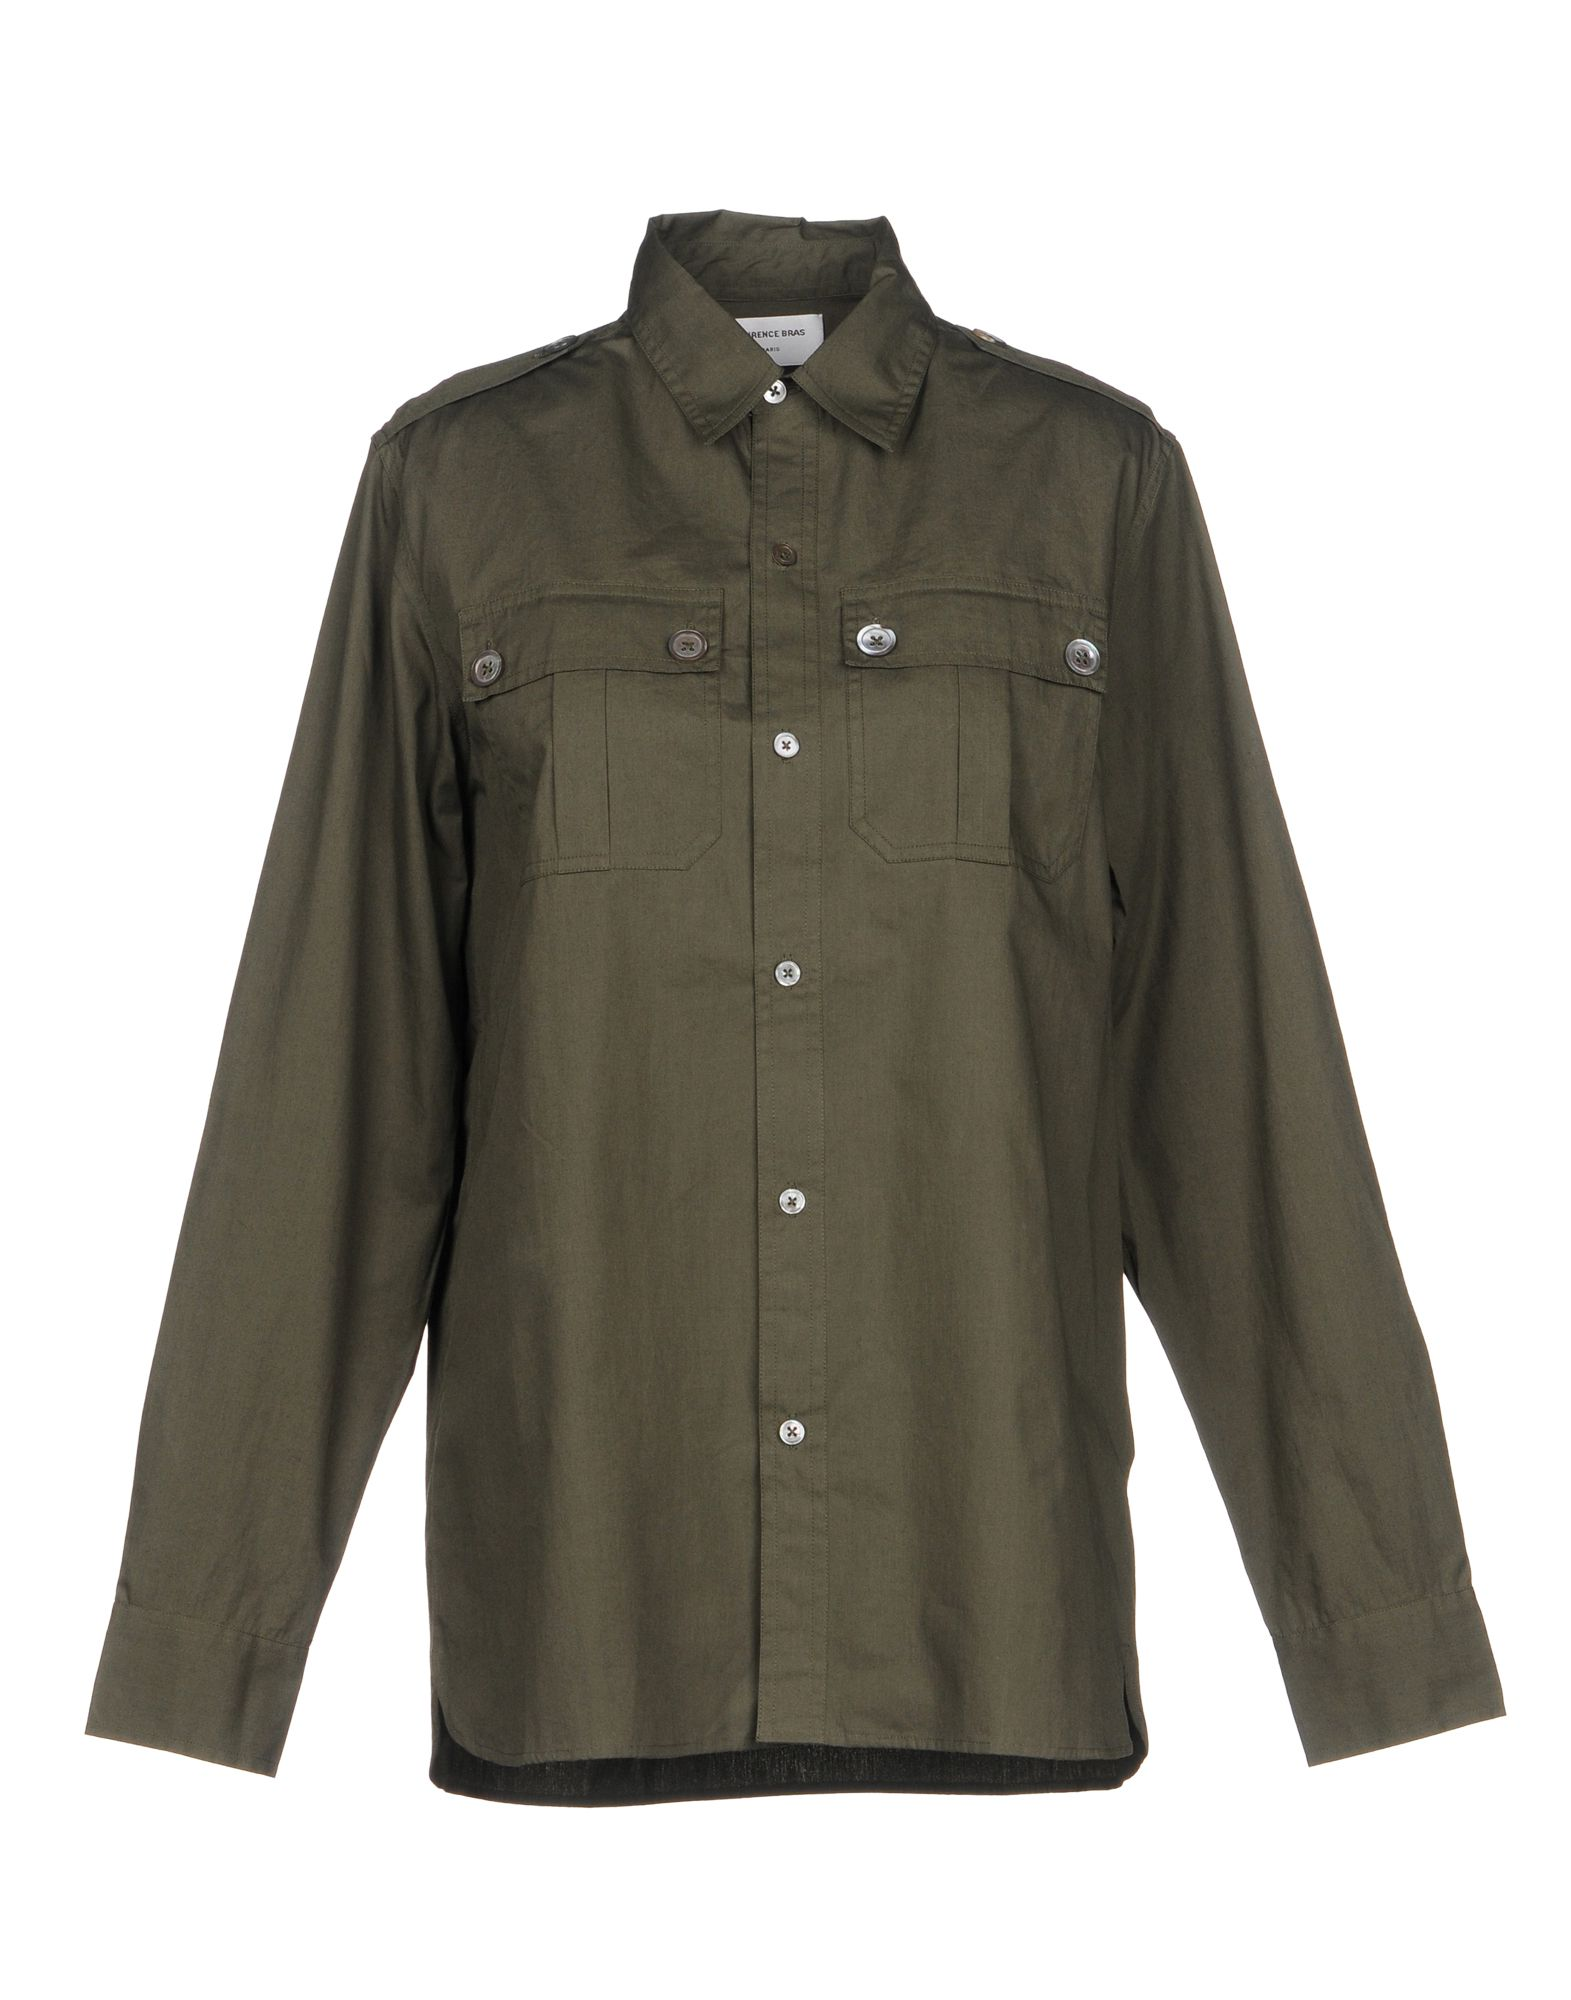 LAURENCE BRAS Solid Color Shirts & Blouses in Military Green